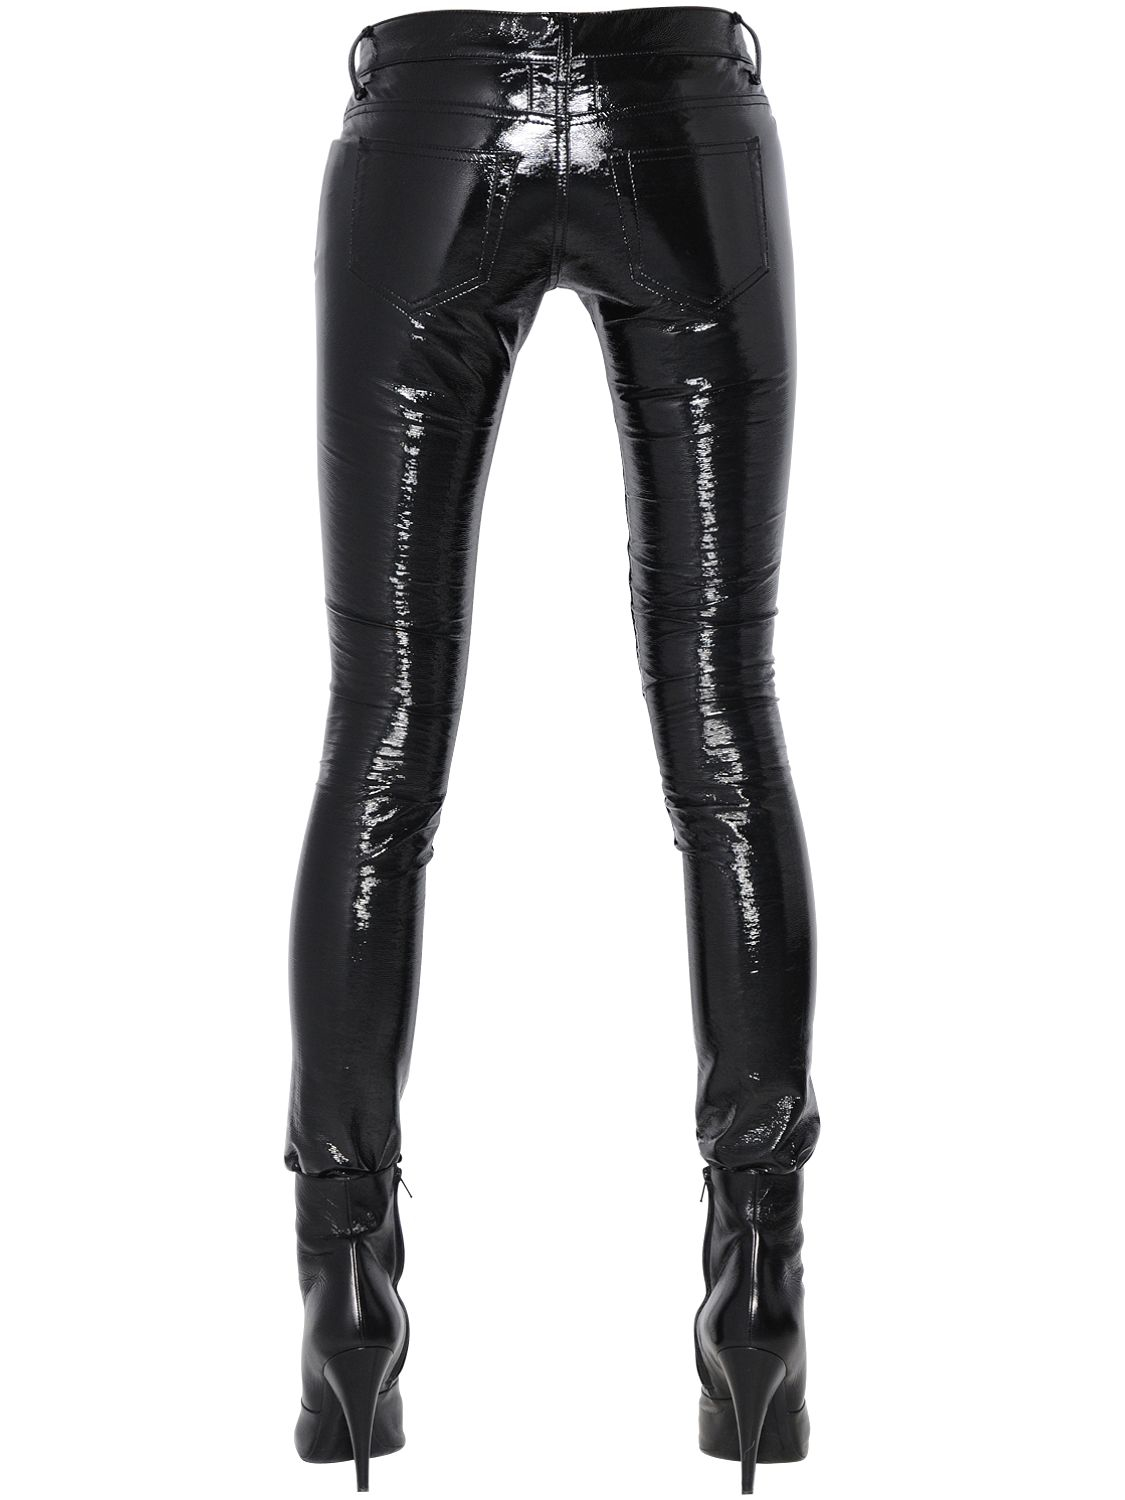 Shop for women patent leather pants online at Target. Free shipping on purchases over $35 and save 5% every day with your Target REDcard.